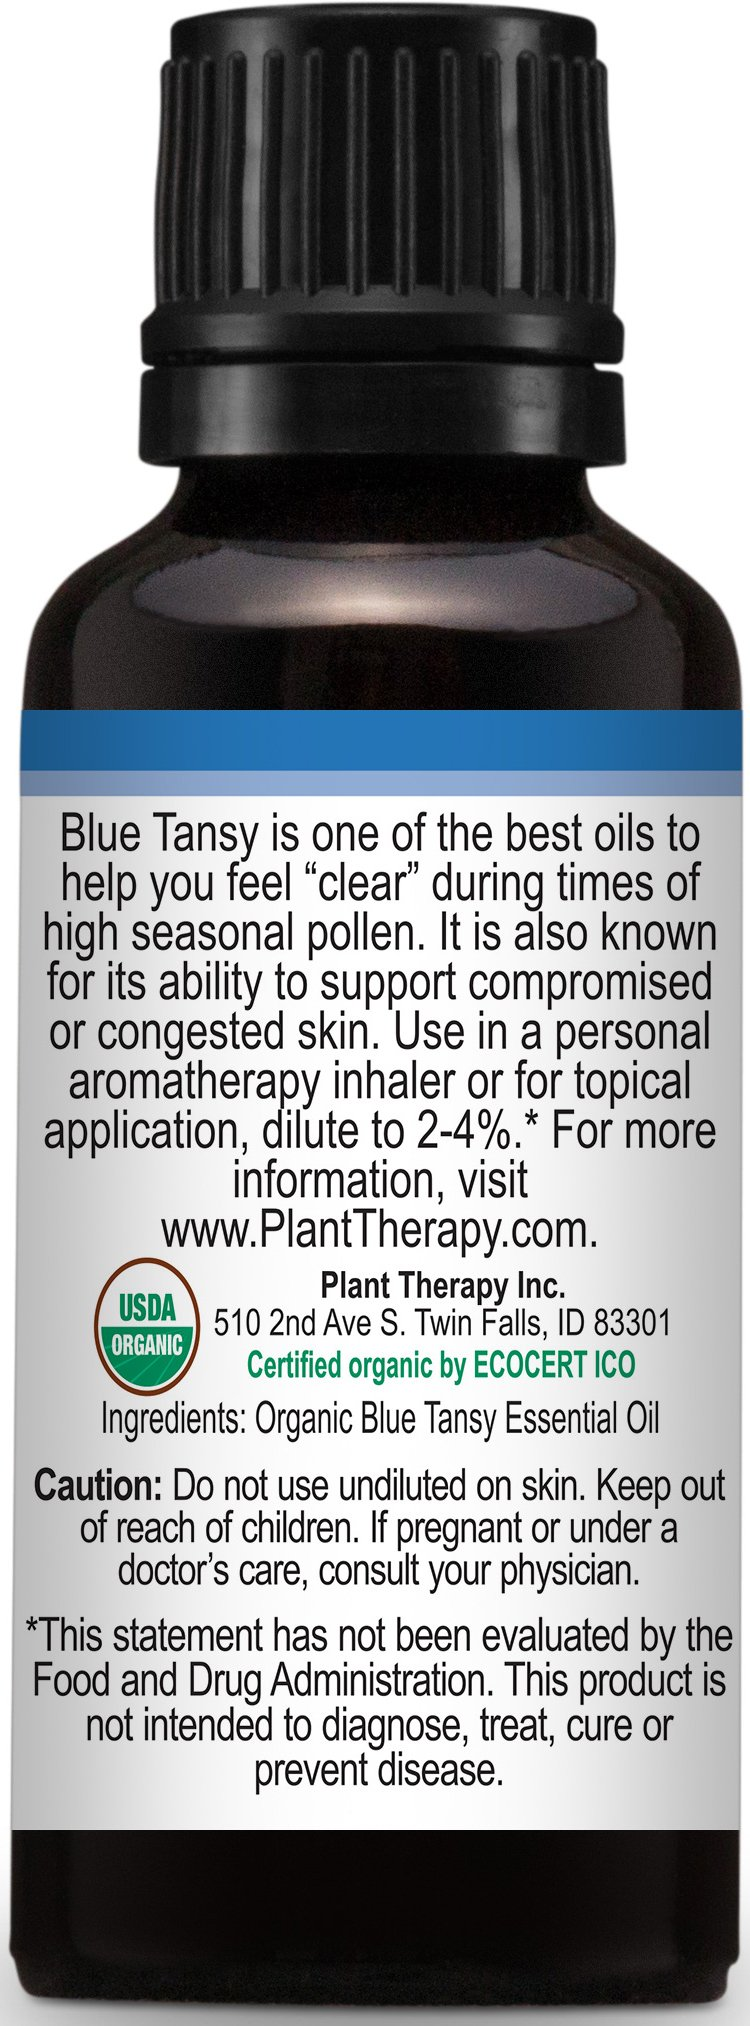 Plant Therapy USDA Certified Organic Blue Tansy Essential Oil. 100% Pure, Undiluted, Therapeutic Grade. 30 ml (1 oz). by Plant Therapy (Image #5)